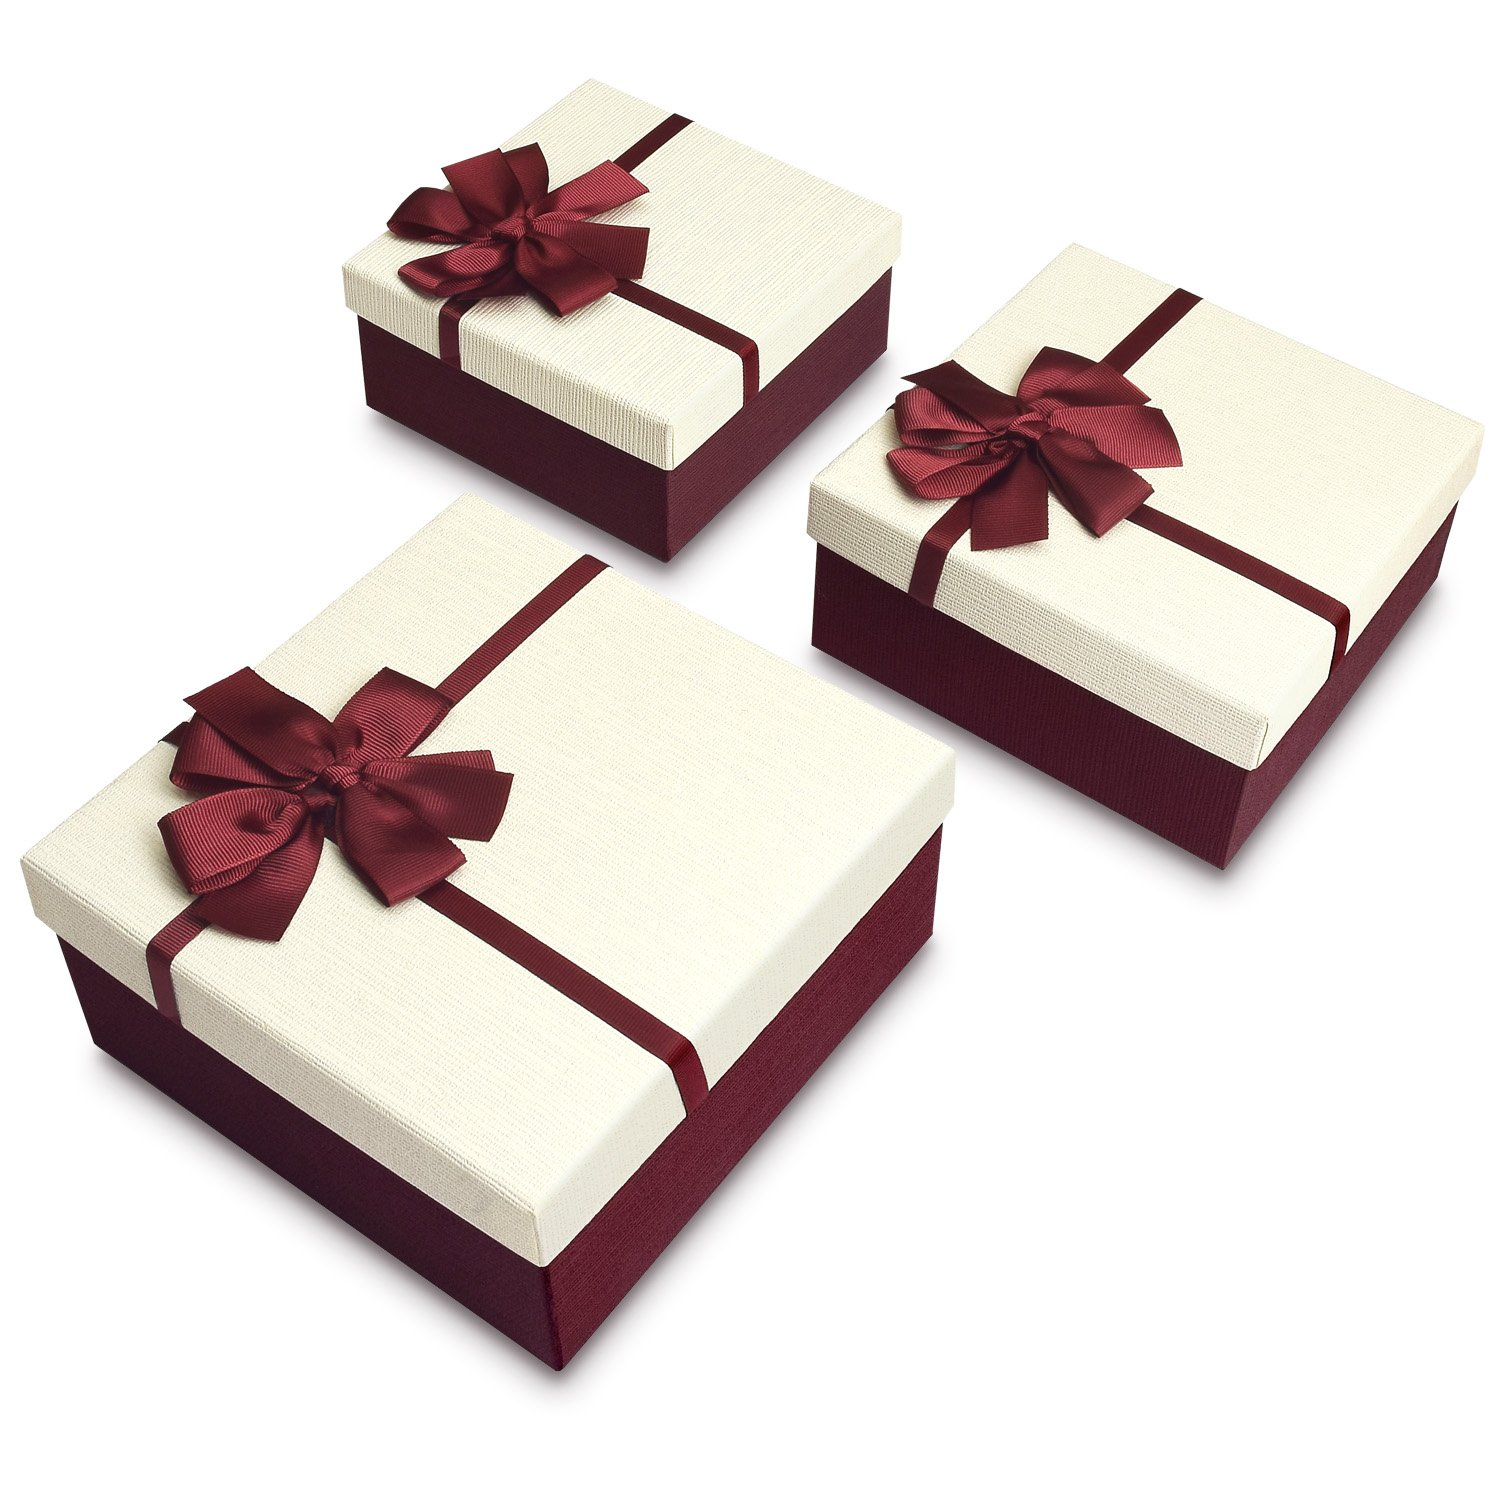 Square Nesting Gift Boxes, A Set of 3, White Color with A Ribbon Bowtie